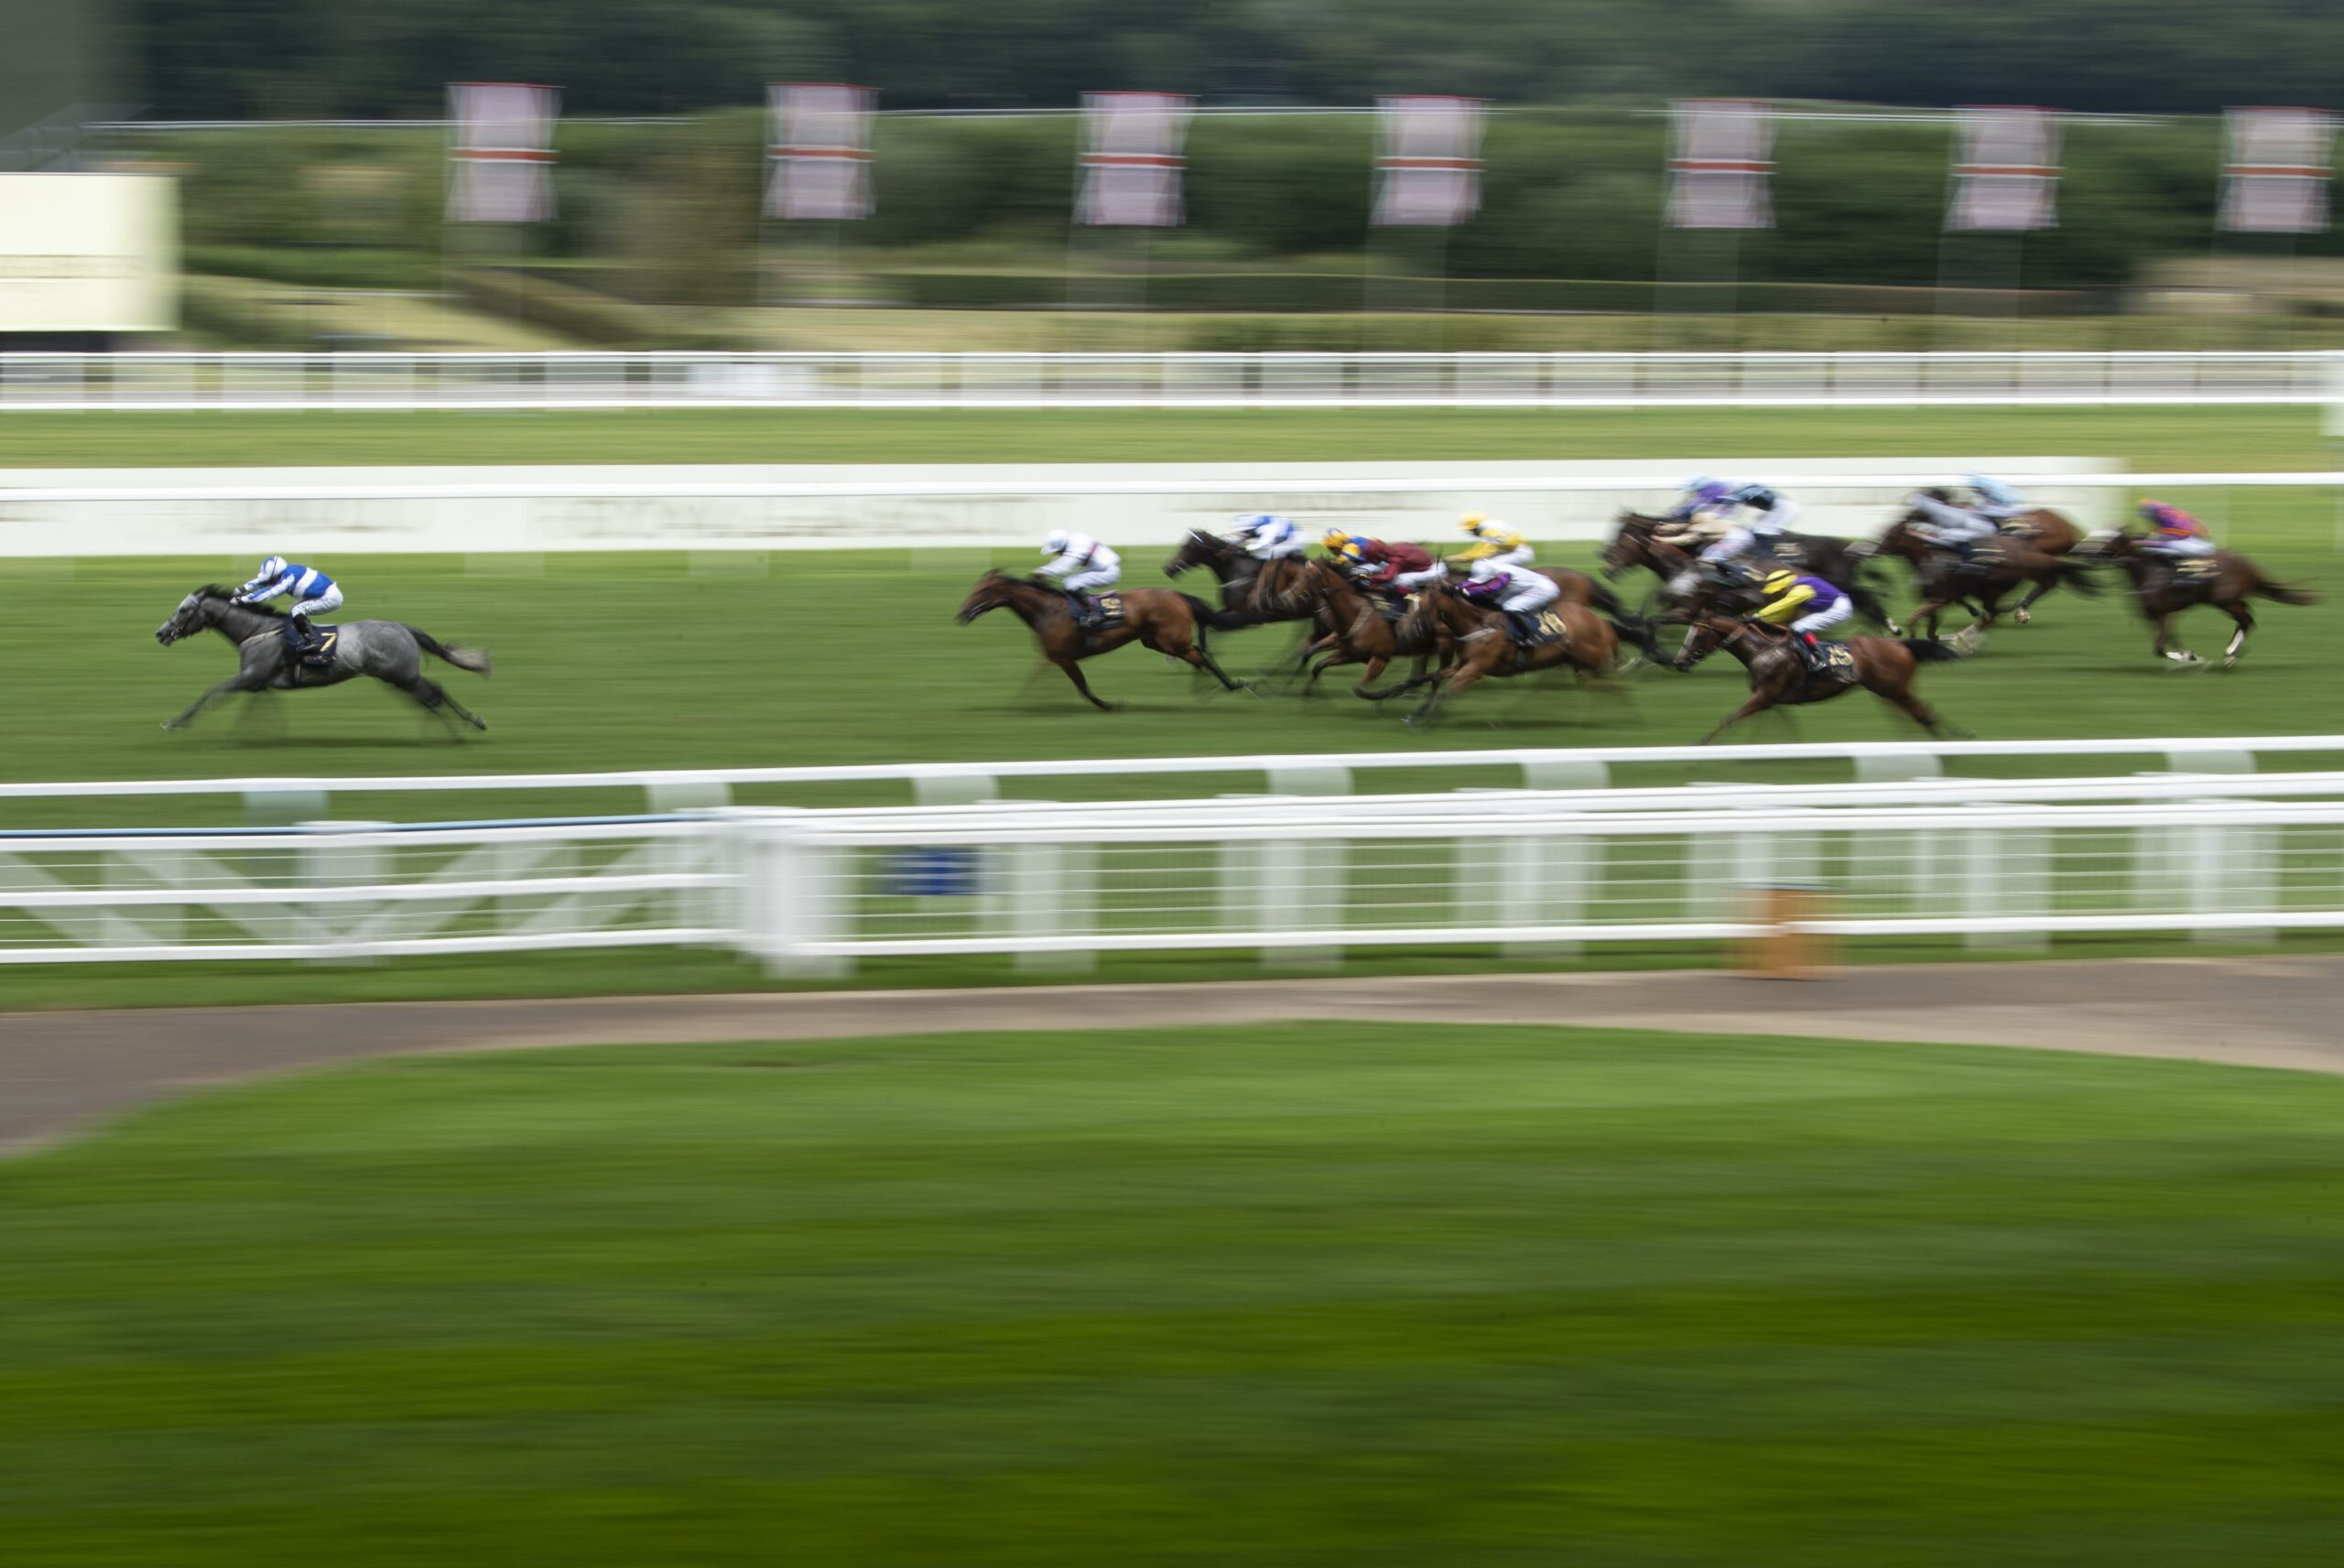 Red Letter Day at Royal Ascot as Art Power Romps Home In Opener